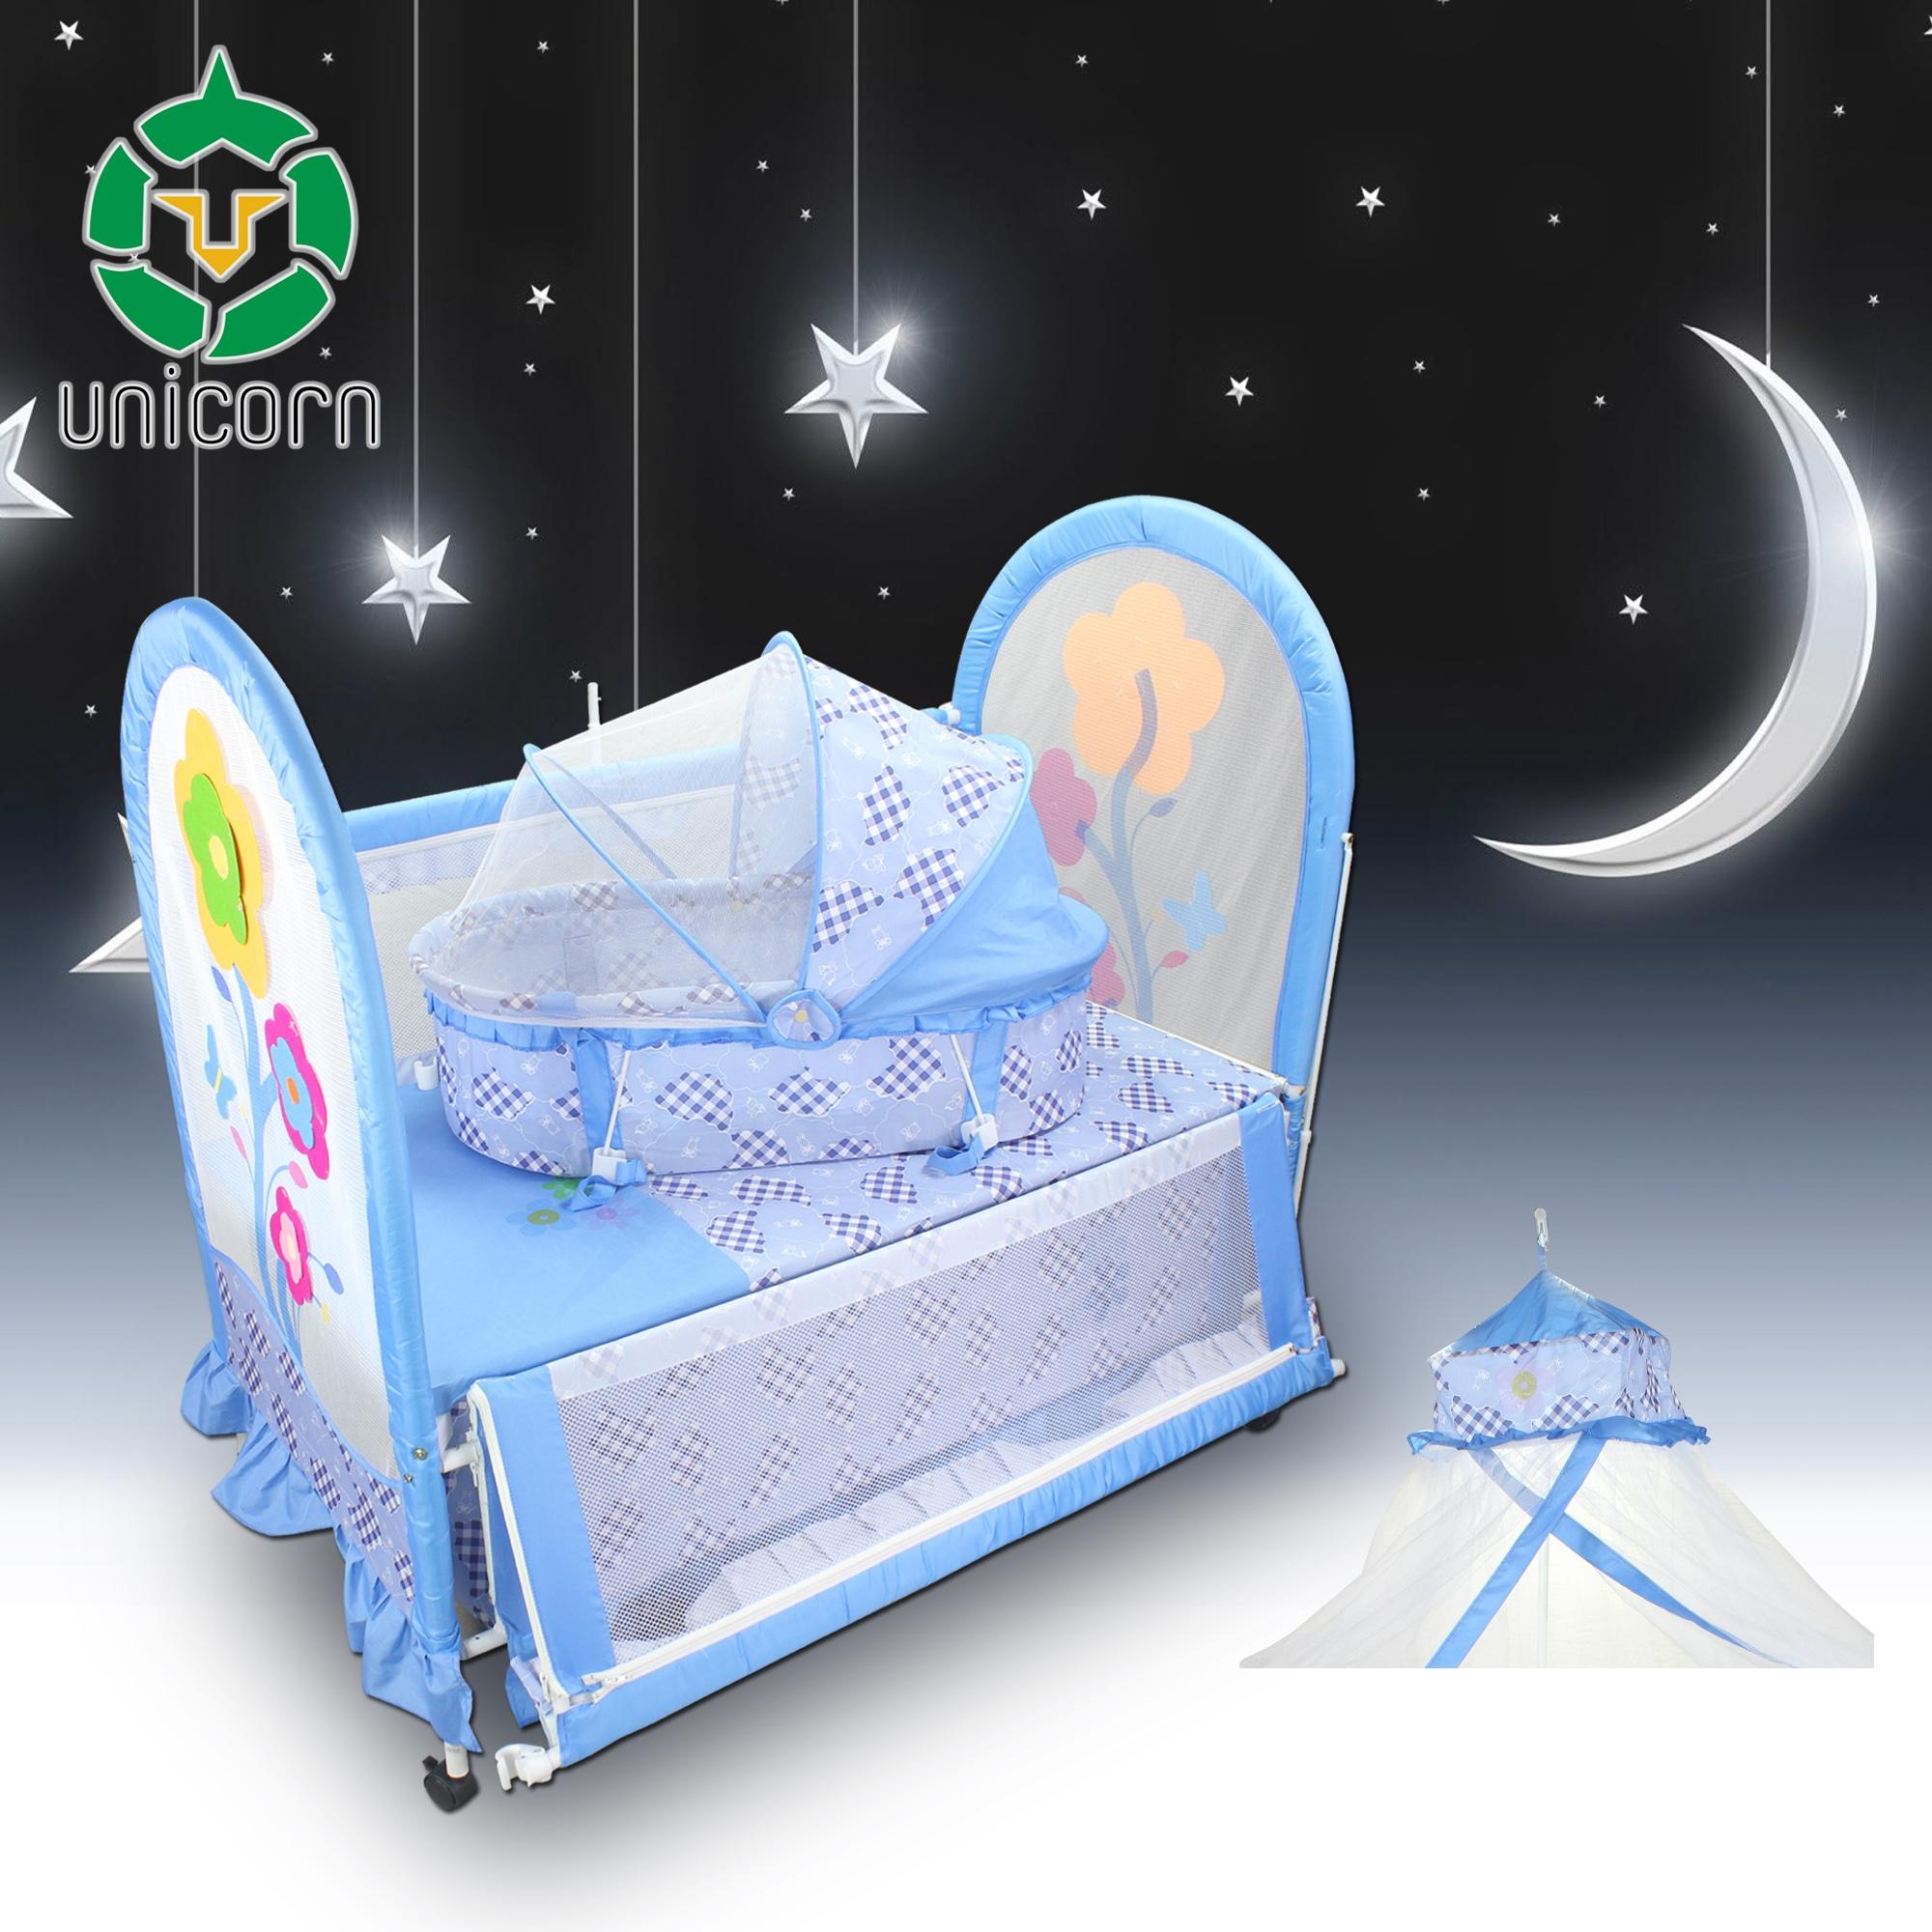 New Unicorn Multi-function 5 in 1 Baby Crib Playpen Carry Basket Baby Swing Co-sleeper Play Yard with Insect Net image